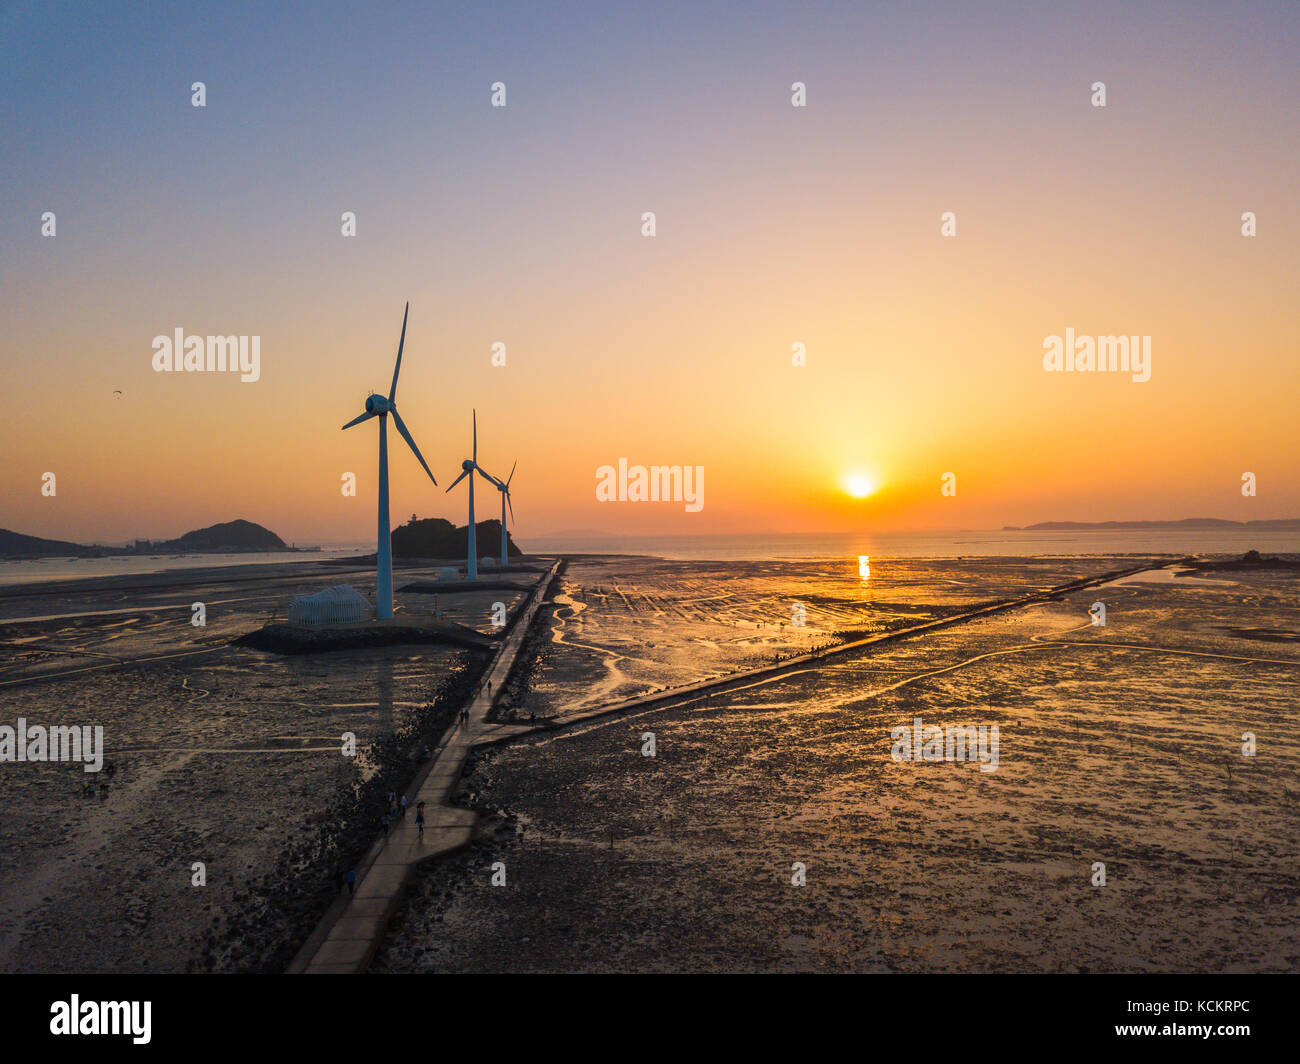 Aerial view Sunset of wind turbine in Daebudo Island,South Korea. - Stock Image